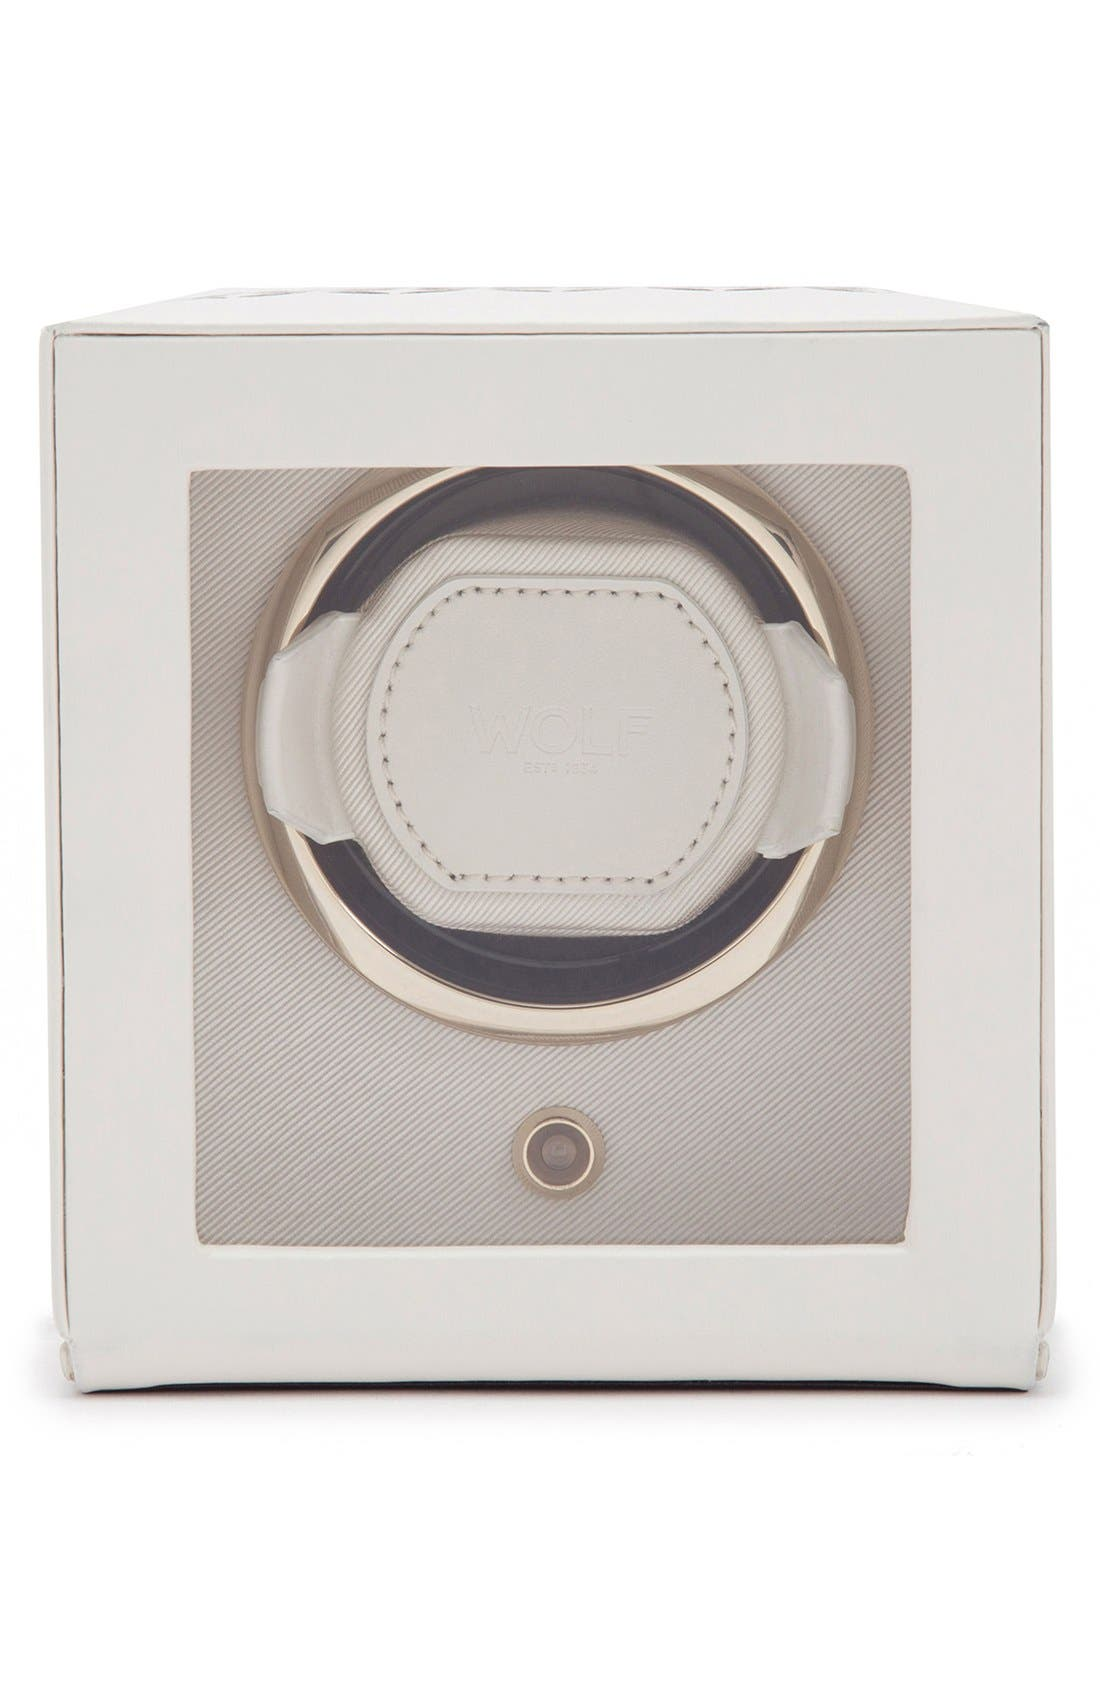 Watch Winder,                             Alternate thumbnail 5, color,                             CREAM